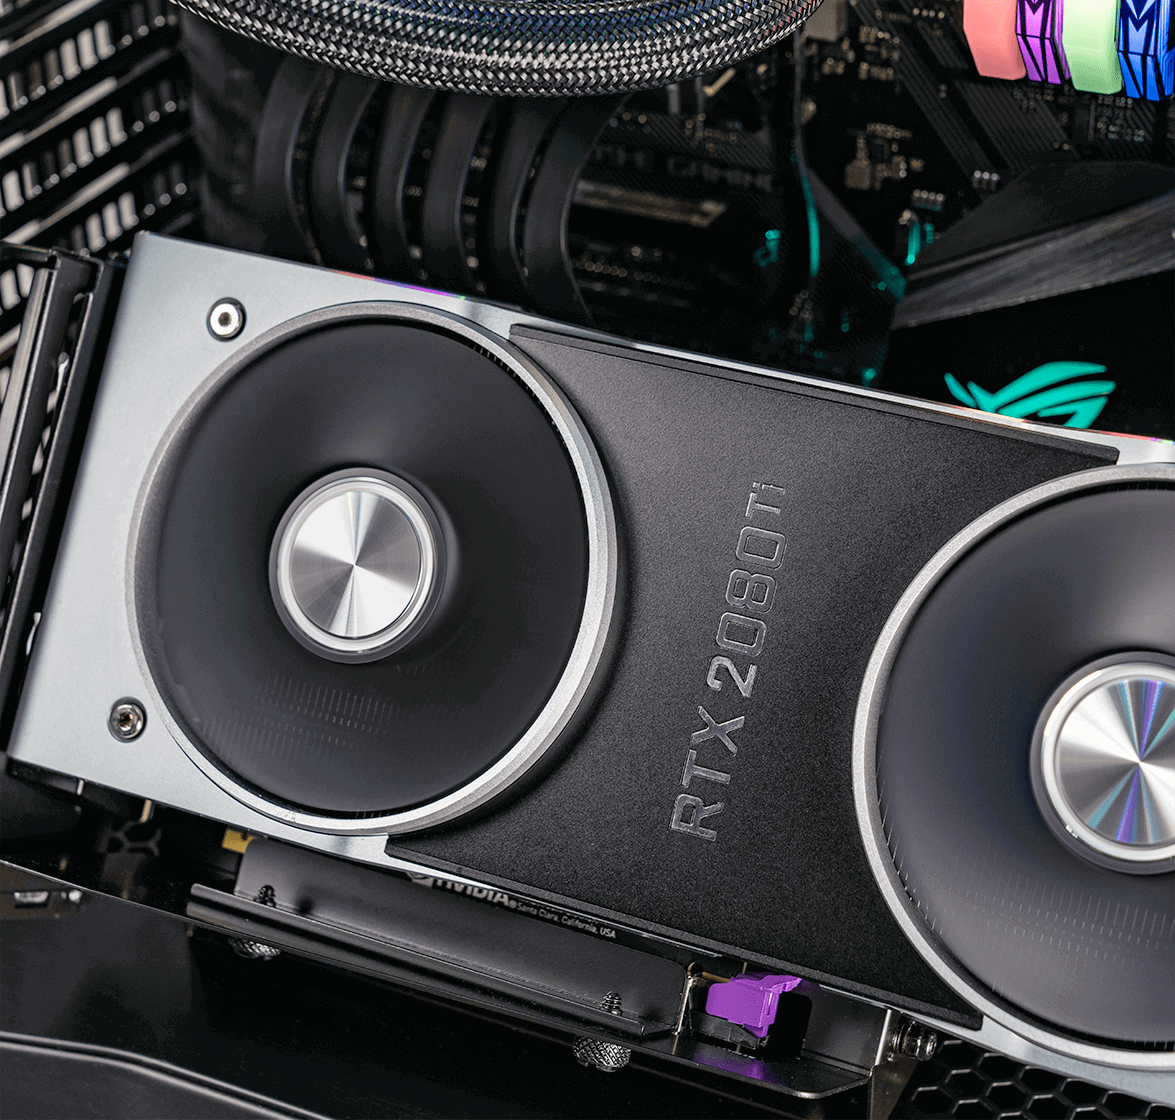 Flex your Graphics Muscle